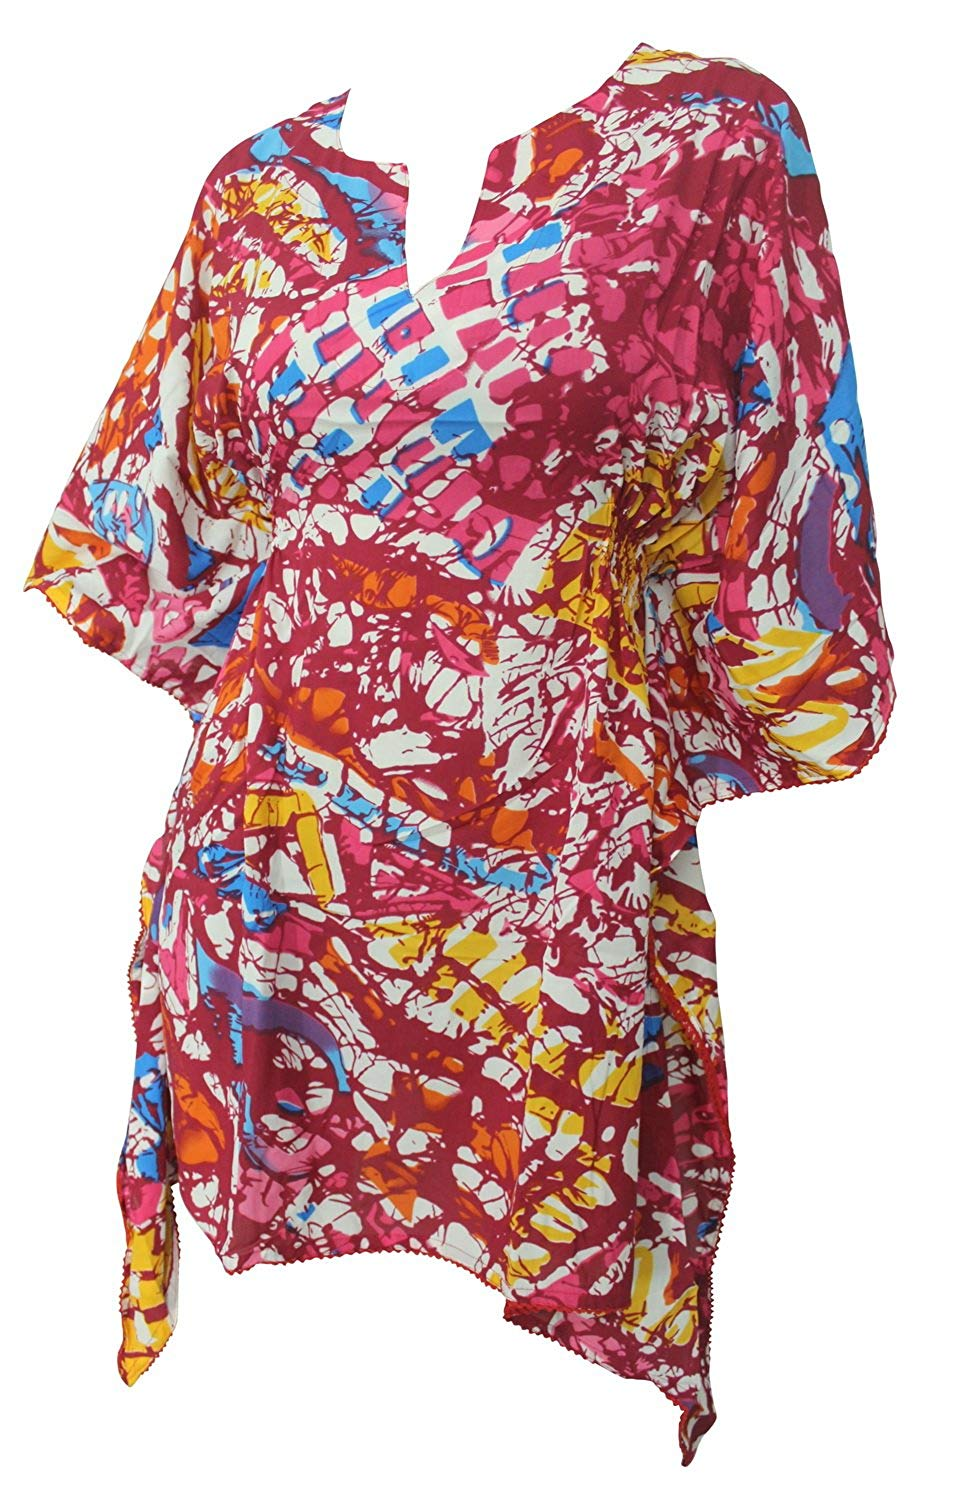 LA LEELA Soft fabric Printed Tassel Swim Cover Up OSFM 8-14 [M-L] Pink_2232